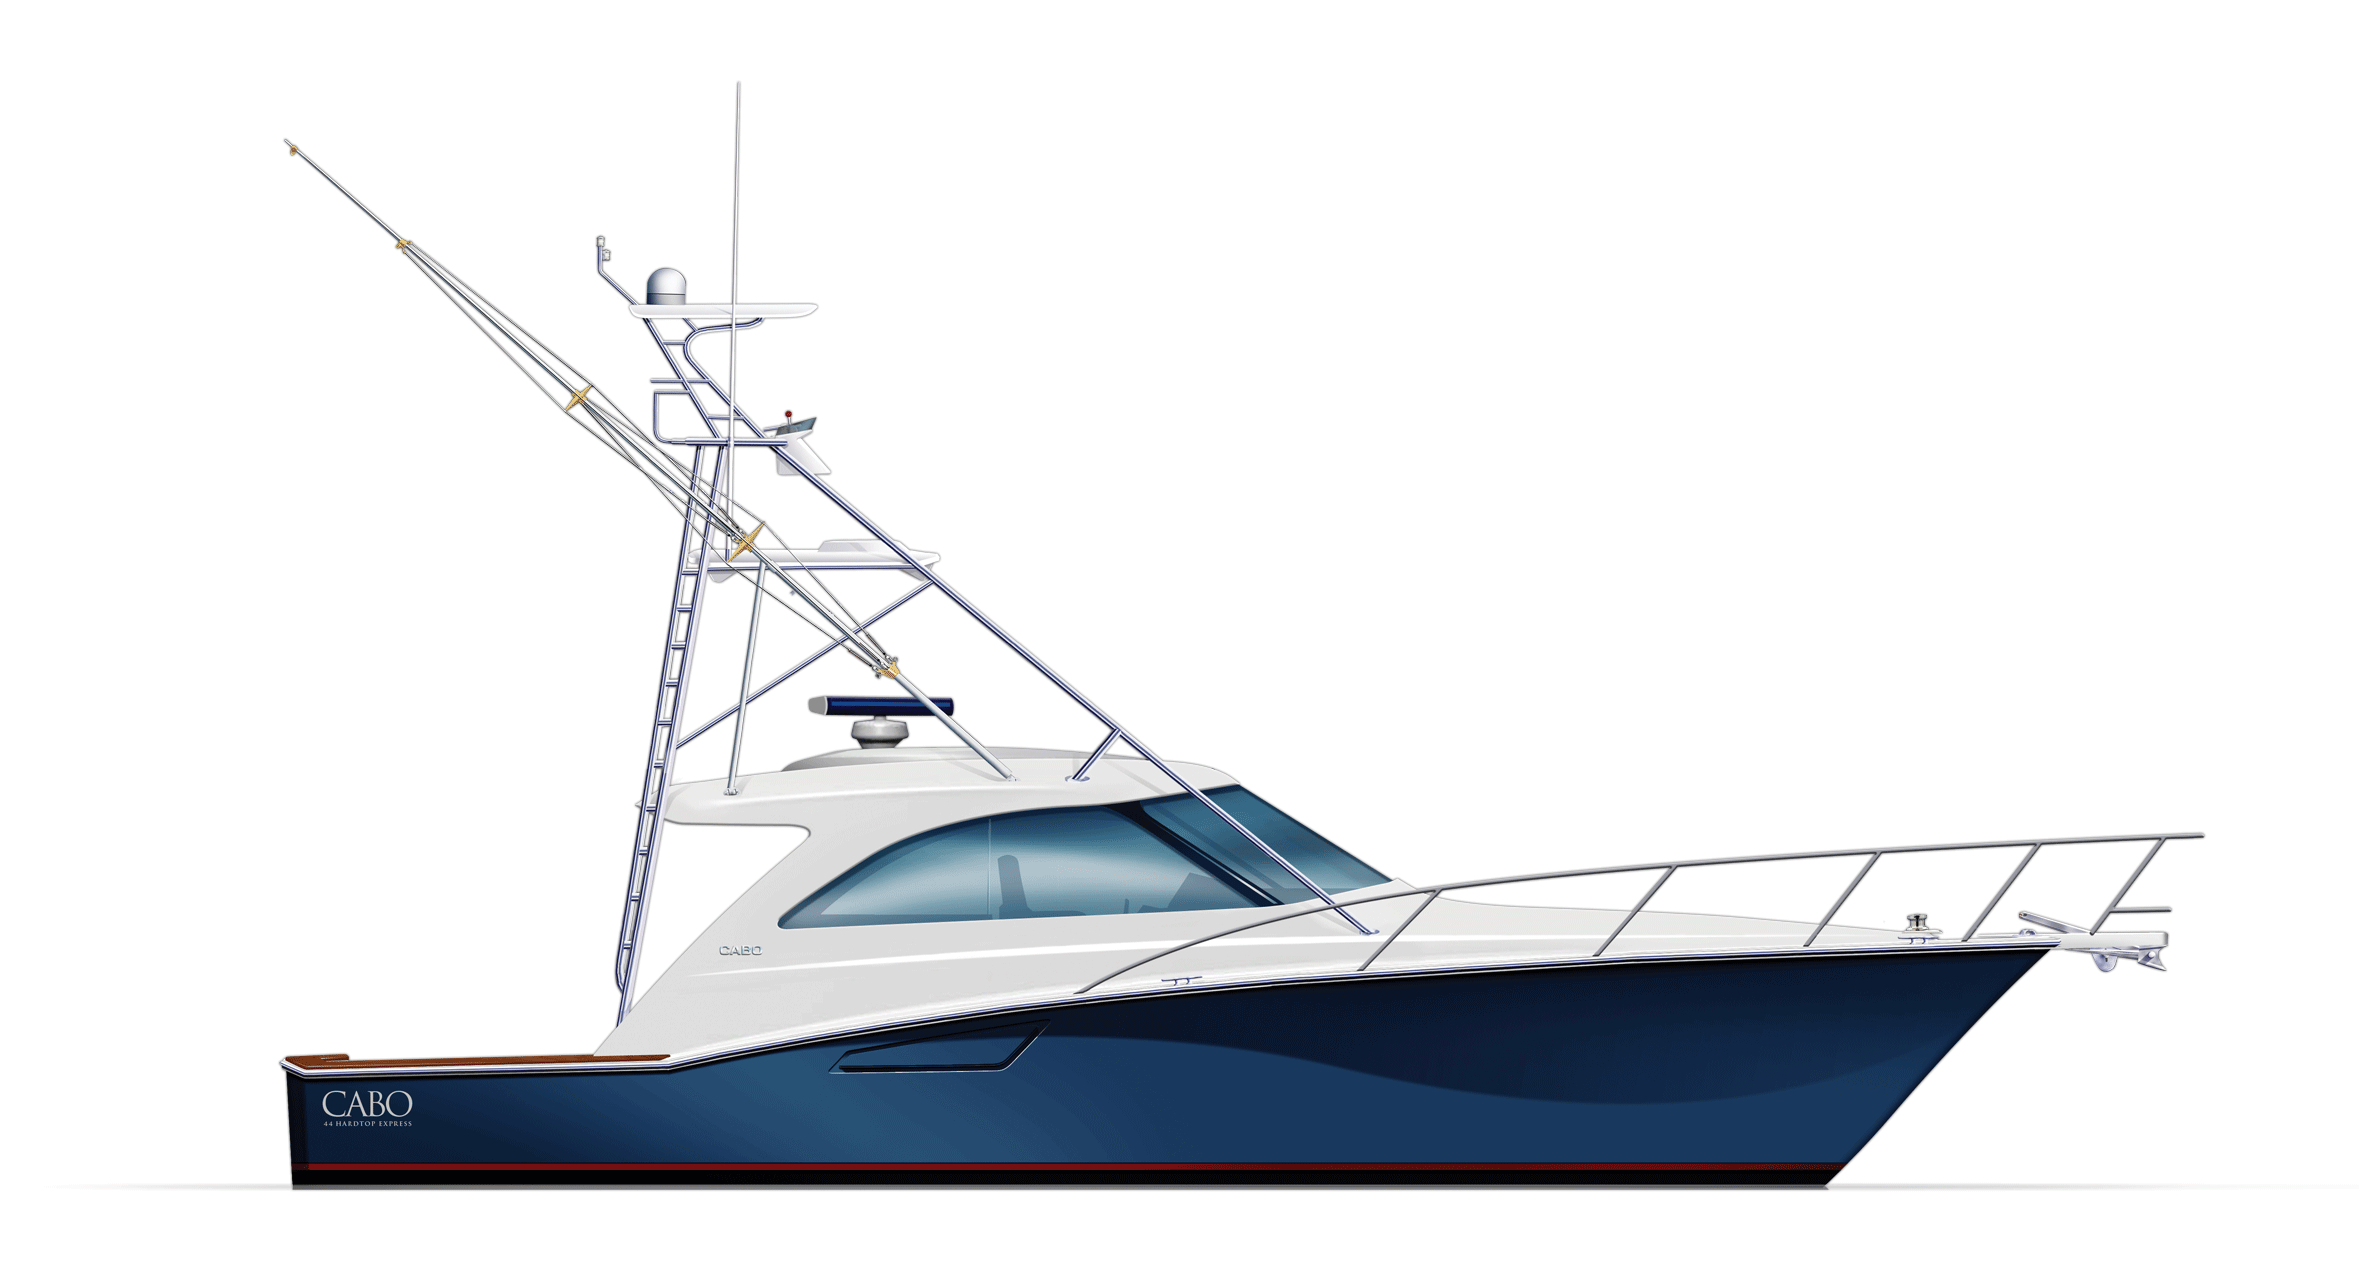 Boat Png image #12267